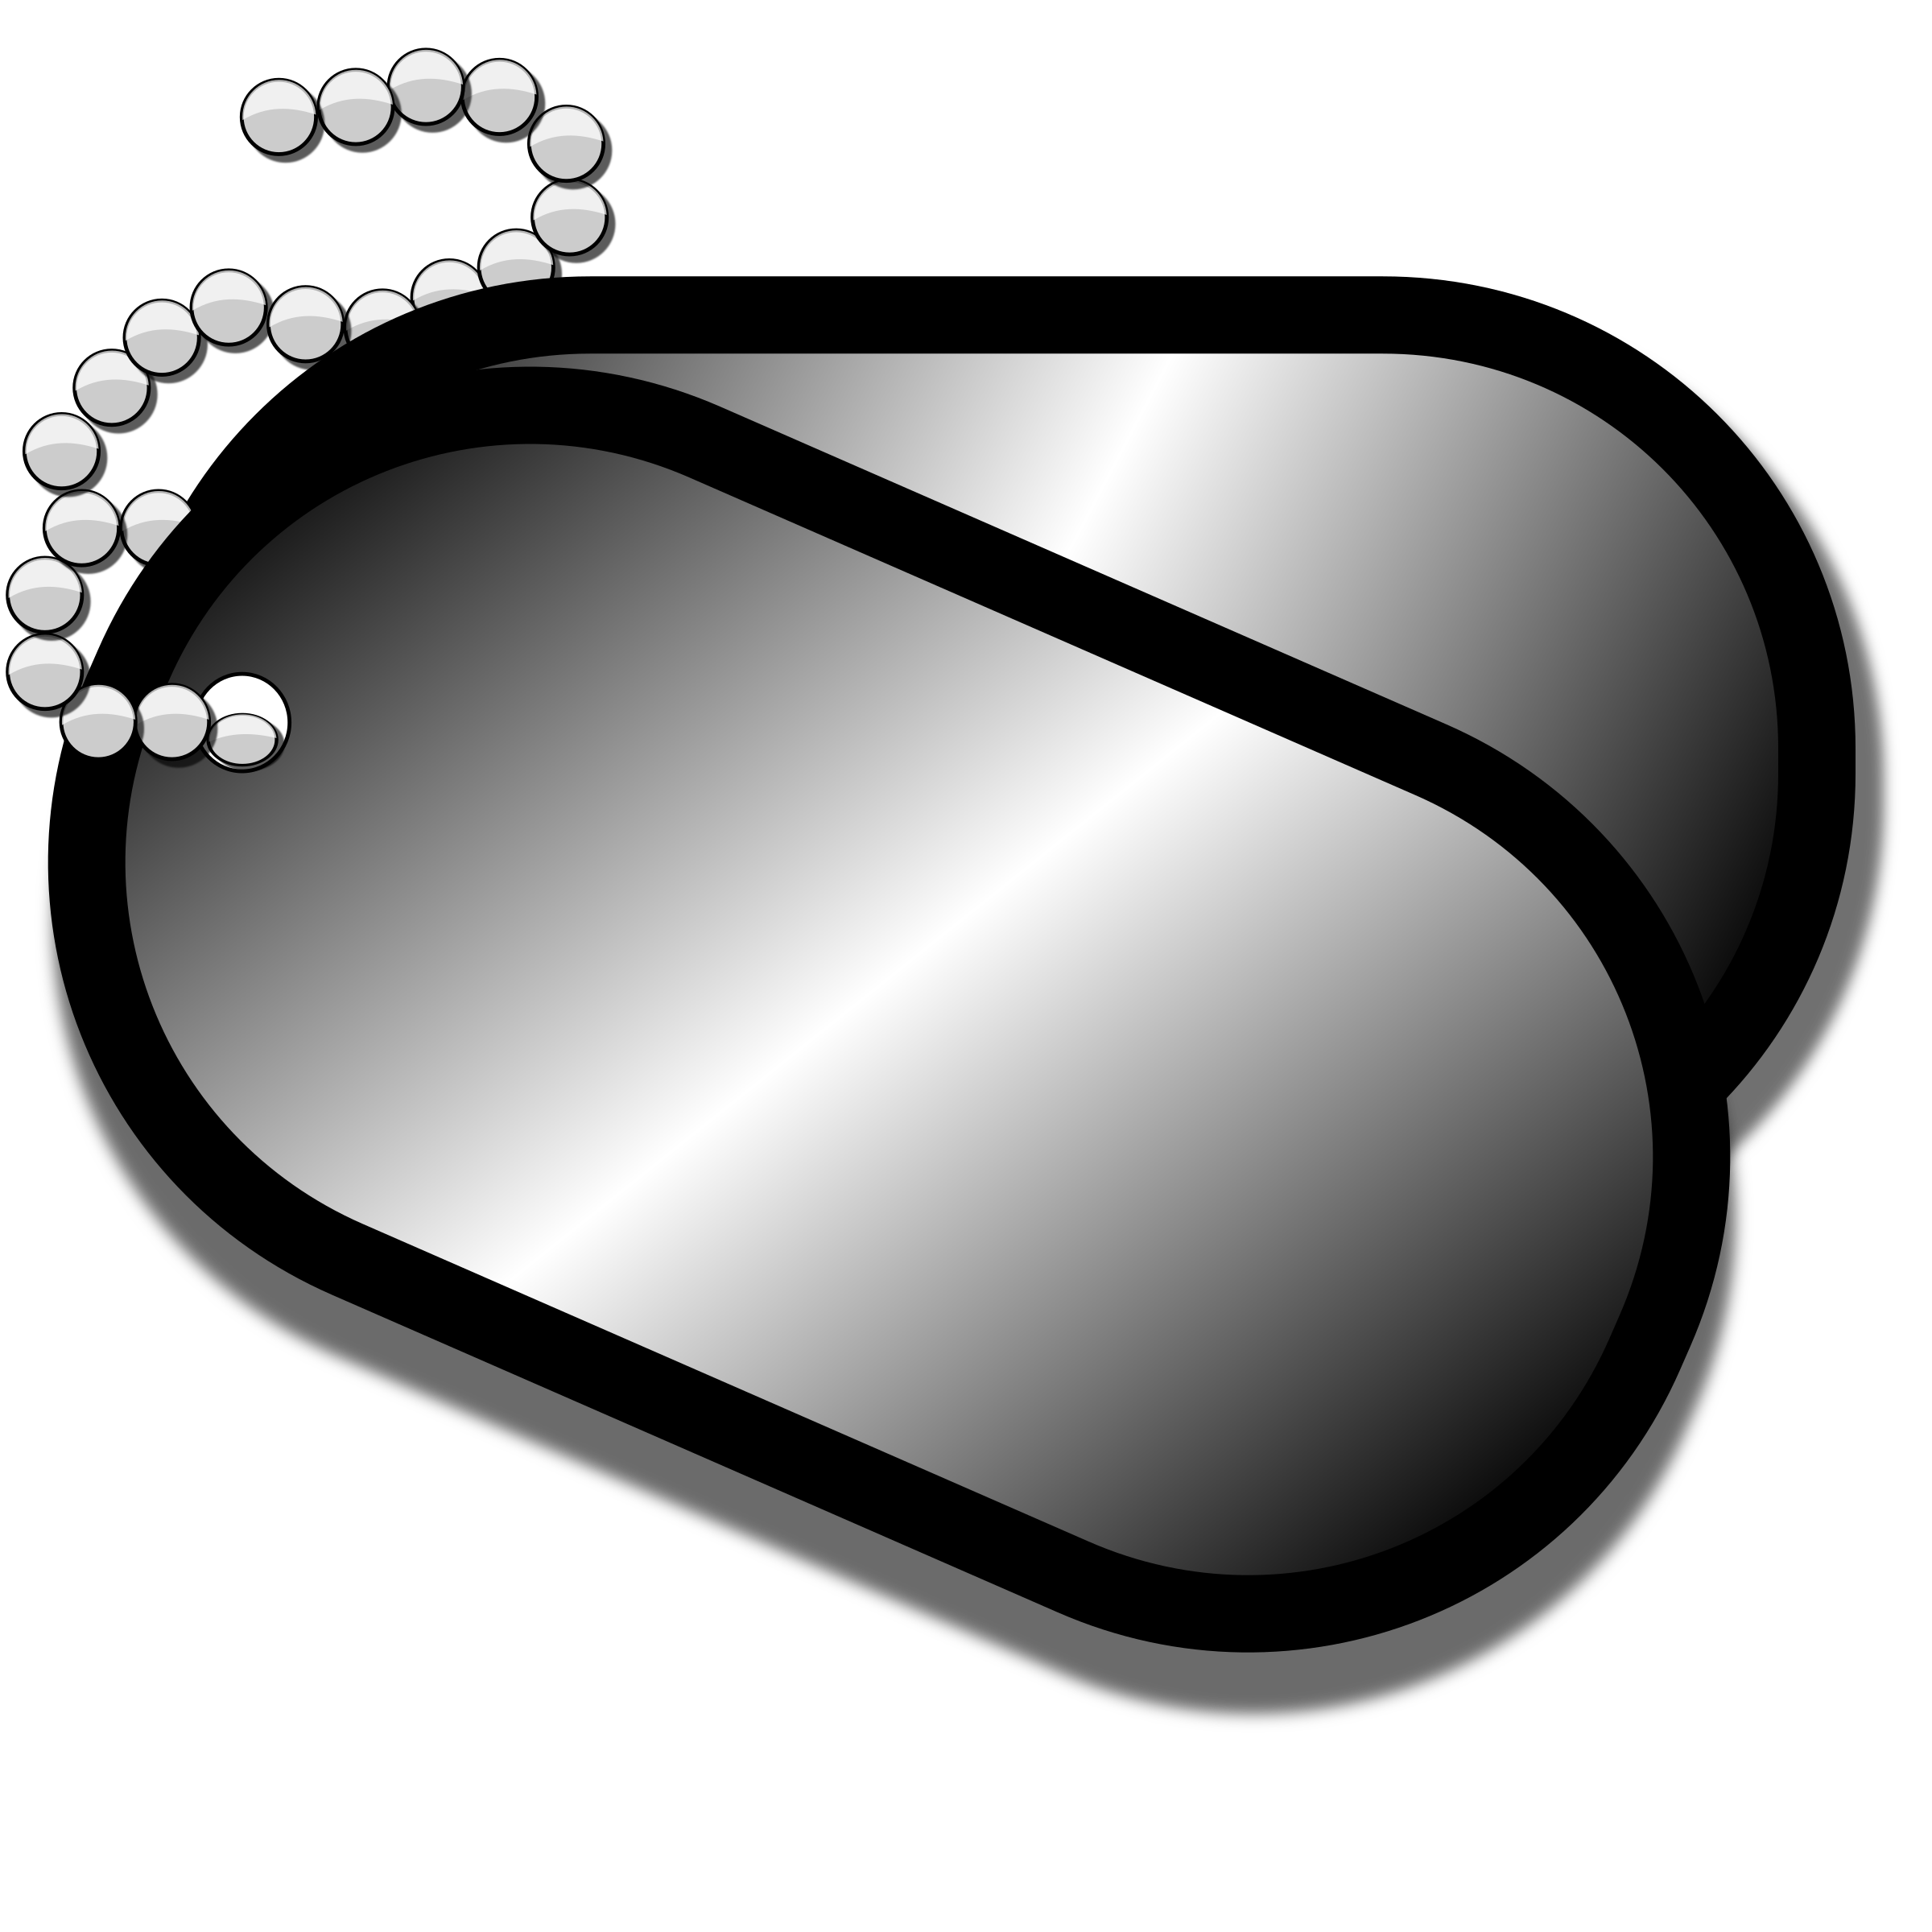 Dog tags png. Icons free and downloads